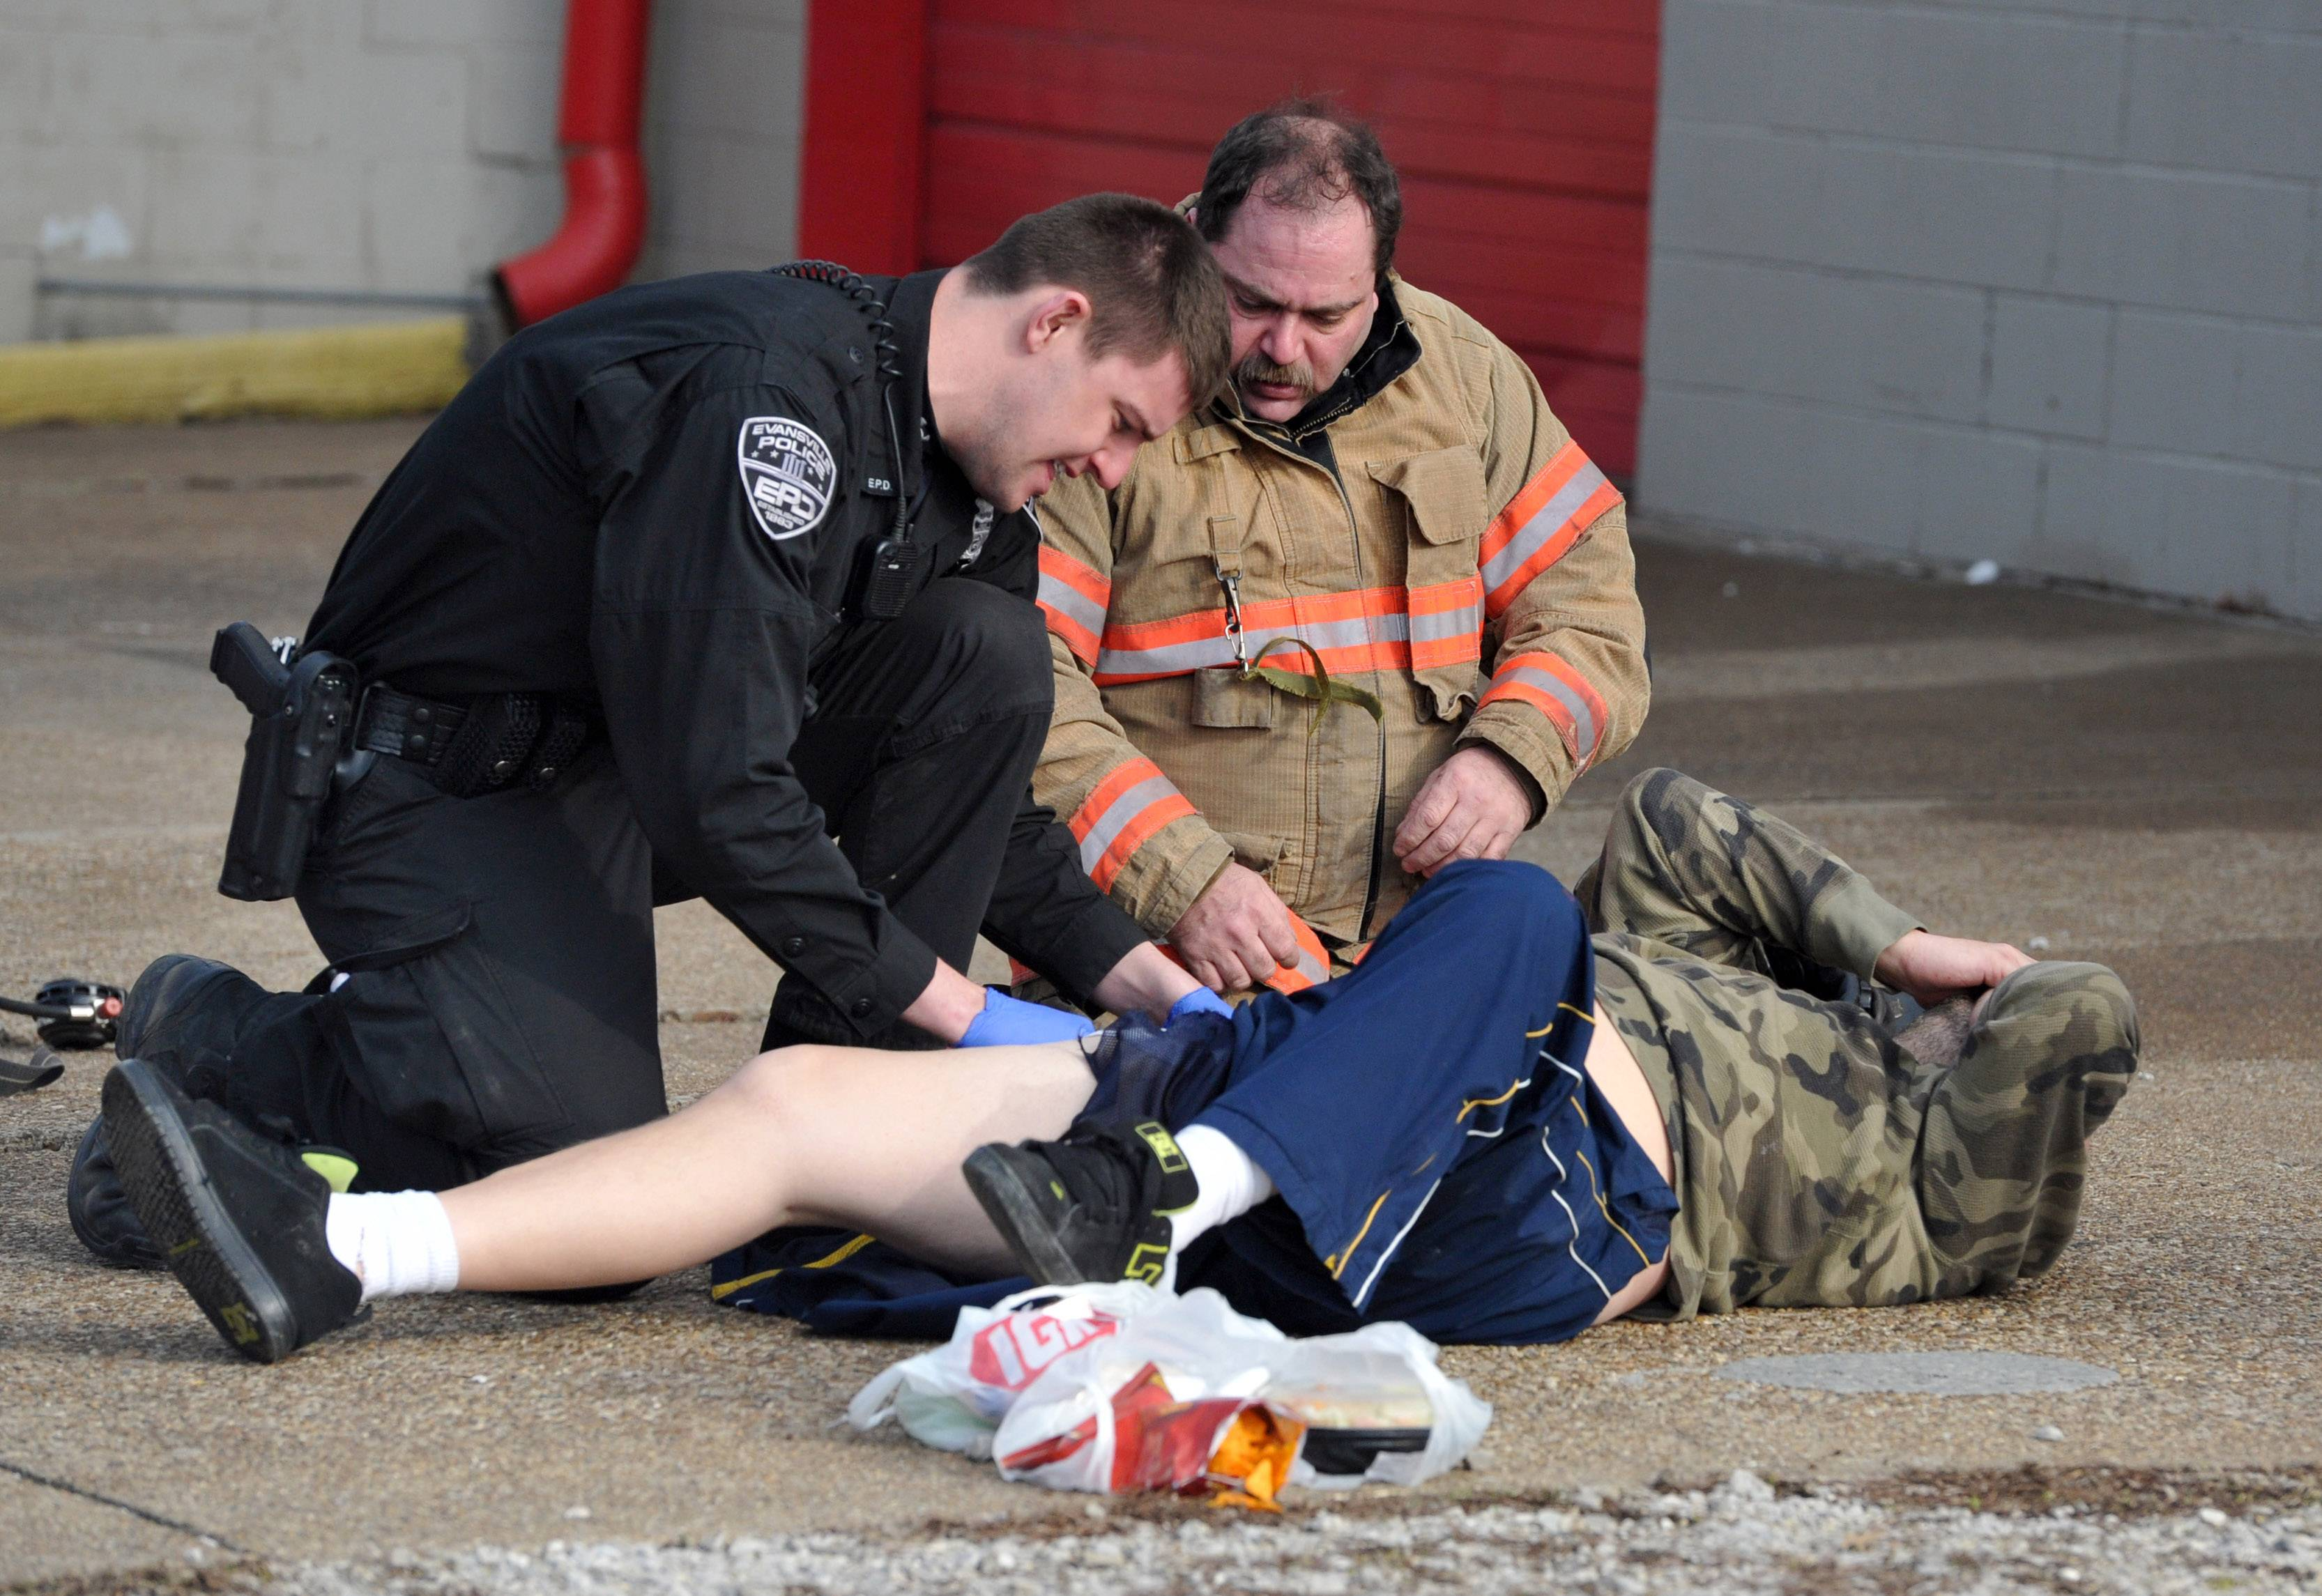 Evansville police Officer Nathan Hassler and an Evansville firefighter tend to a victim of an apartment fire in Evansville, Ind., Monday, March 17, 2014. Three people died and eight others were injured in the fire.